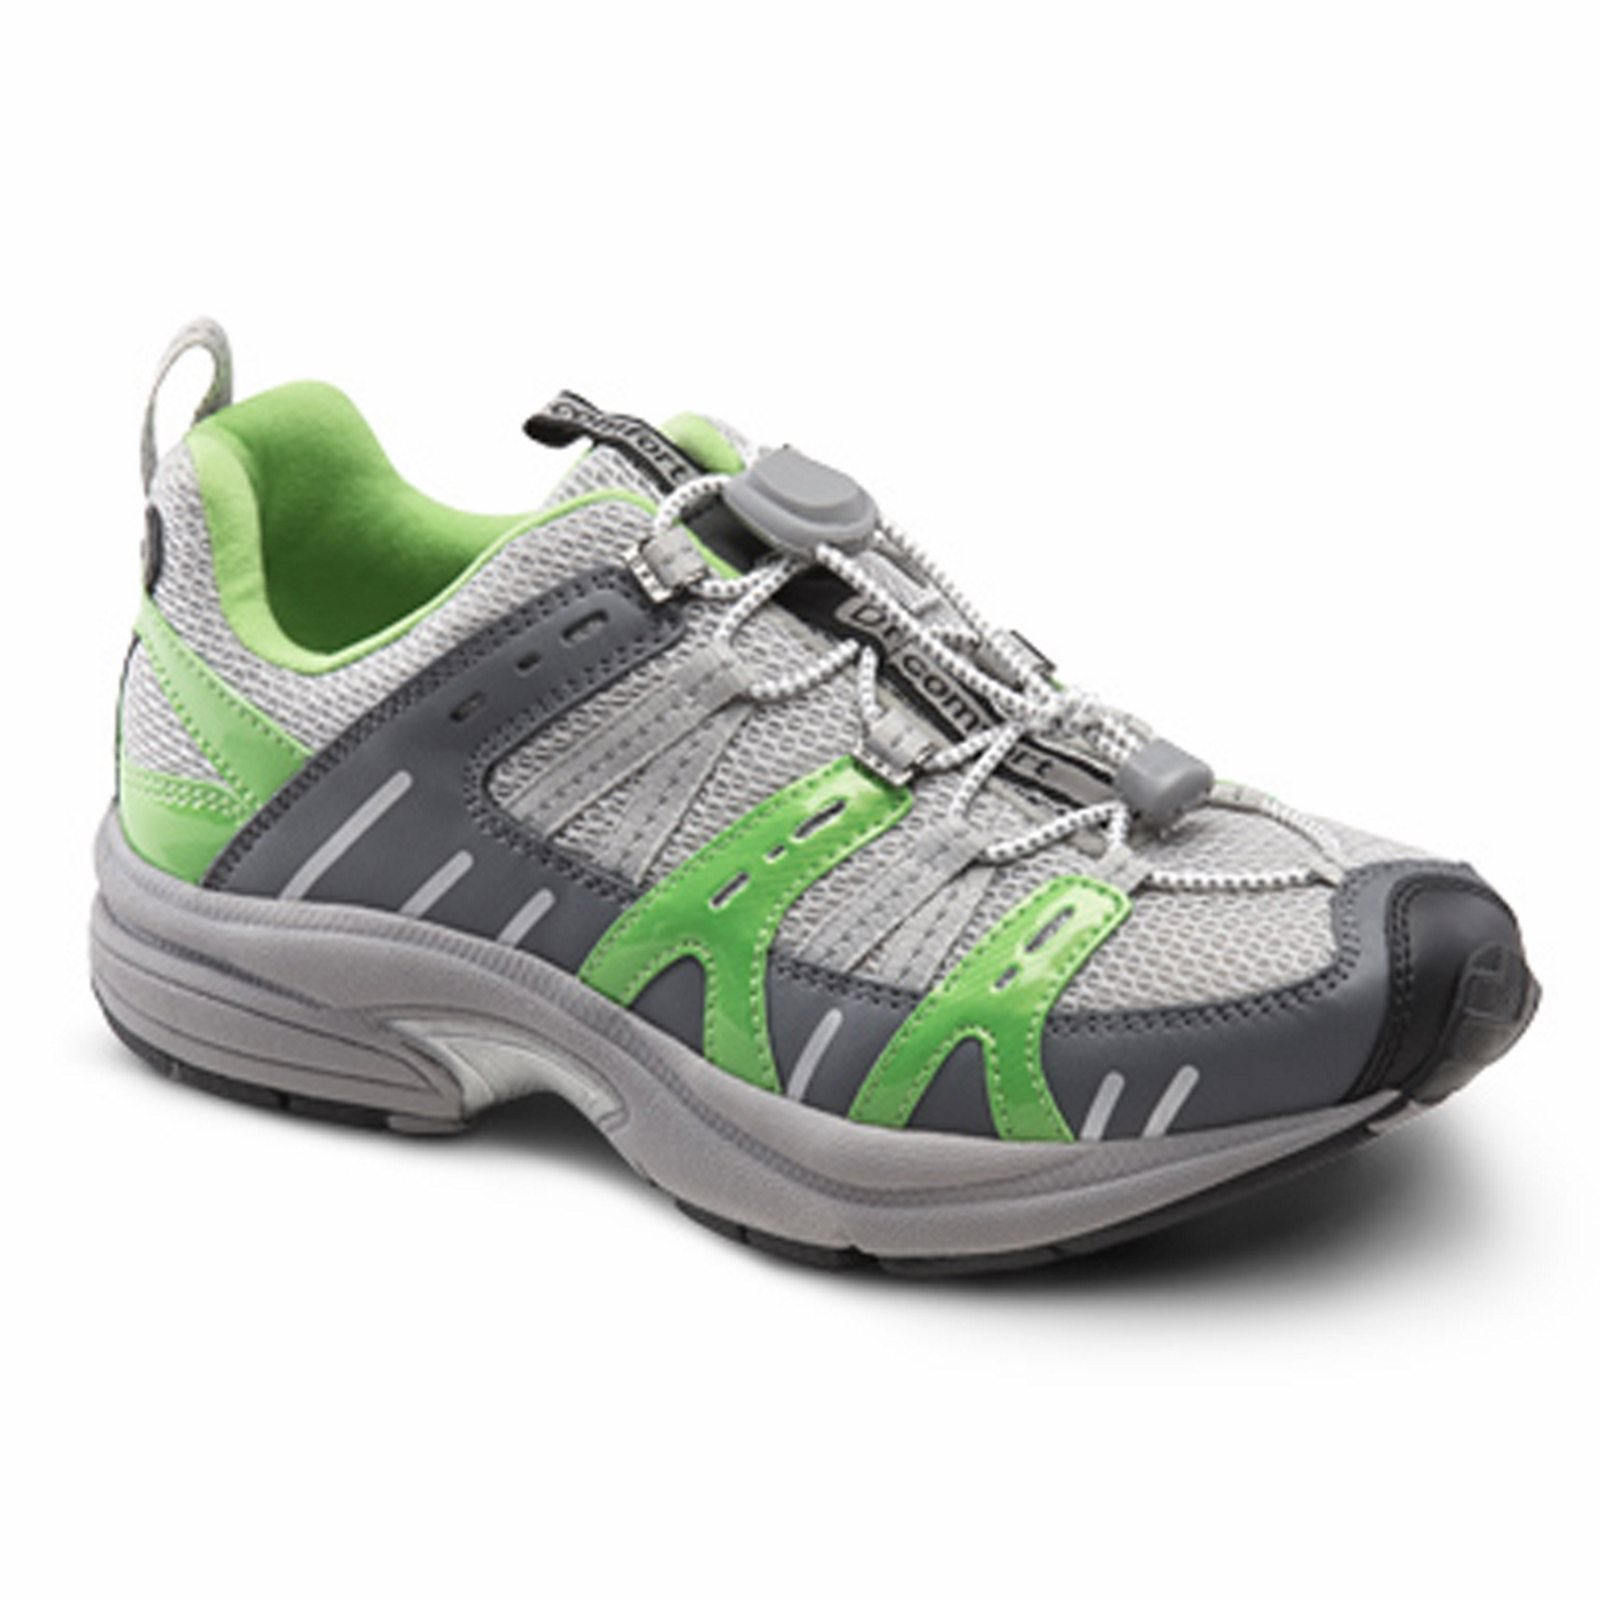 E//EE Comfort Refresh Womens Therapeutic Athletic Shoe: Green 10.0 X-Wide Dr Elastic /& Standard Laces